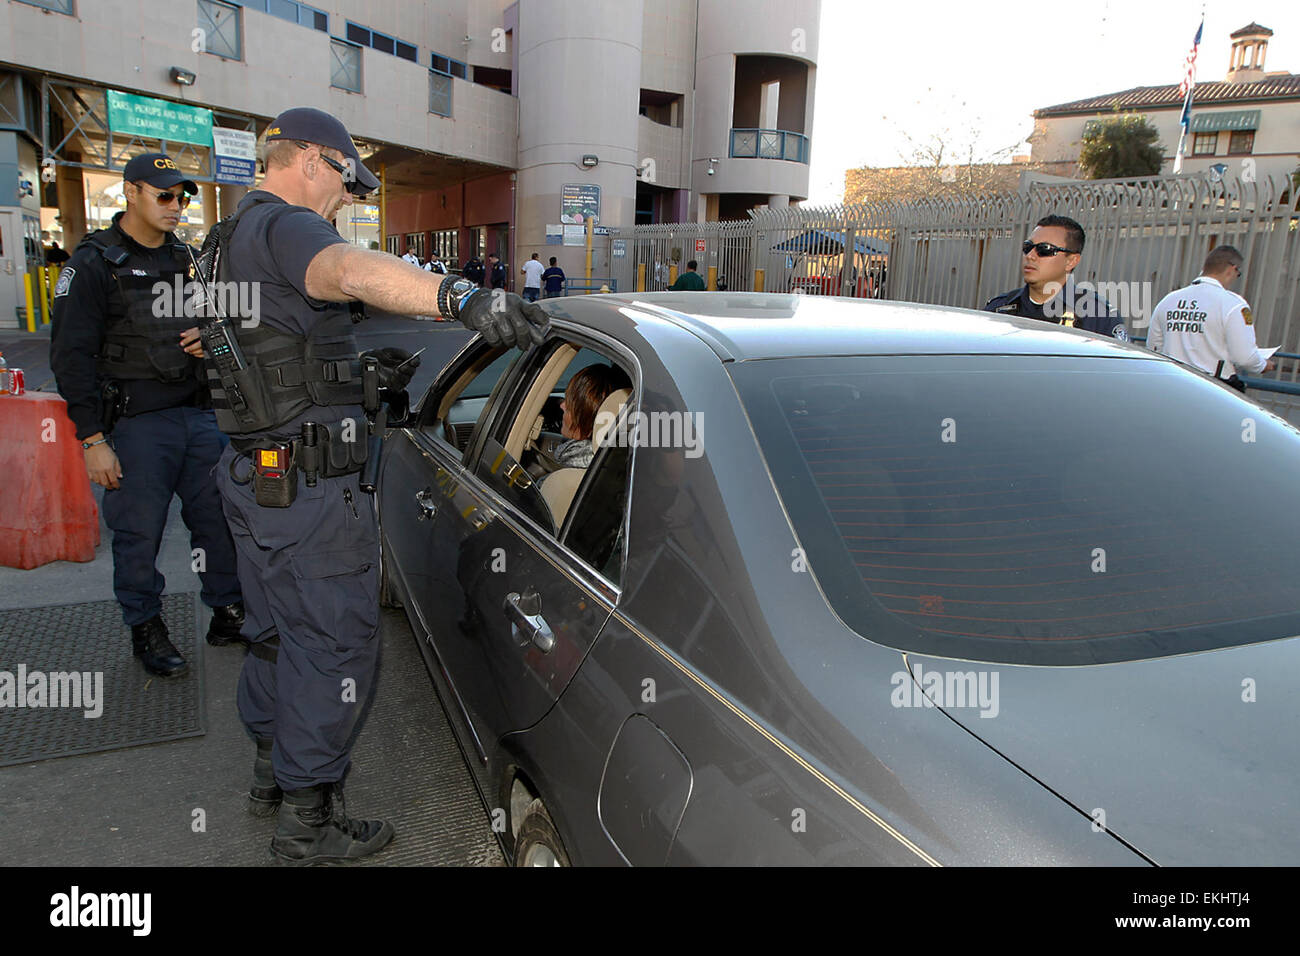 Nogales, AZ - U.S. Customs & Border Protection Officers monitor and inspect vehicles crossing out of  the - Stock Image